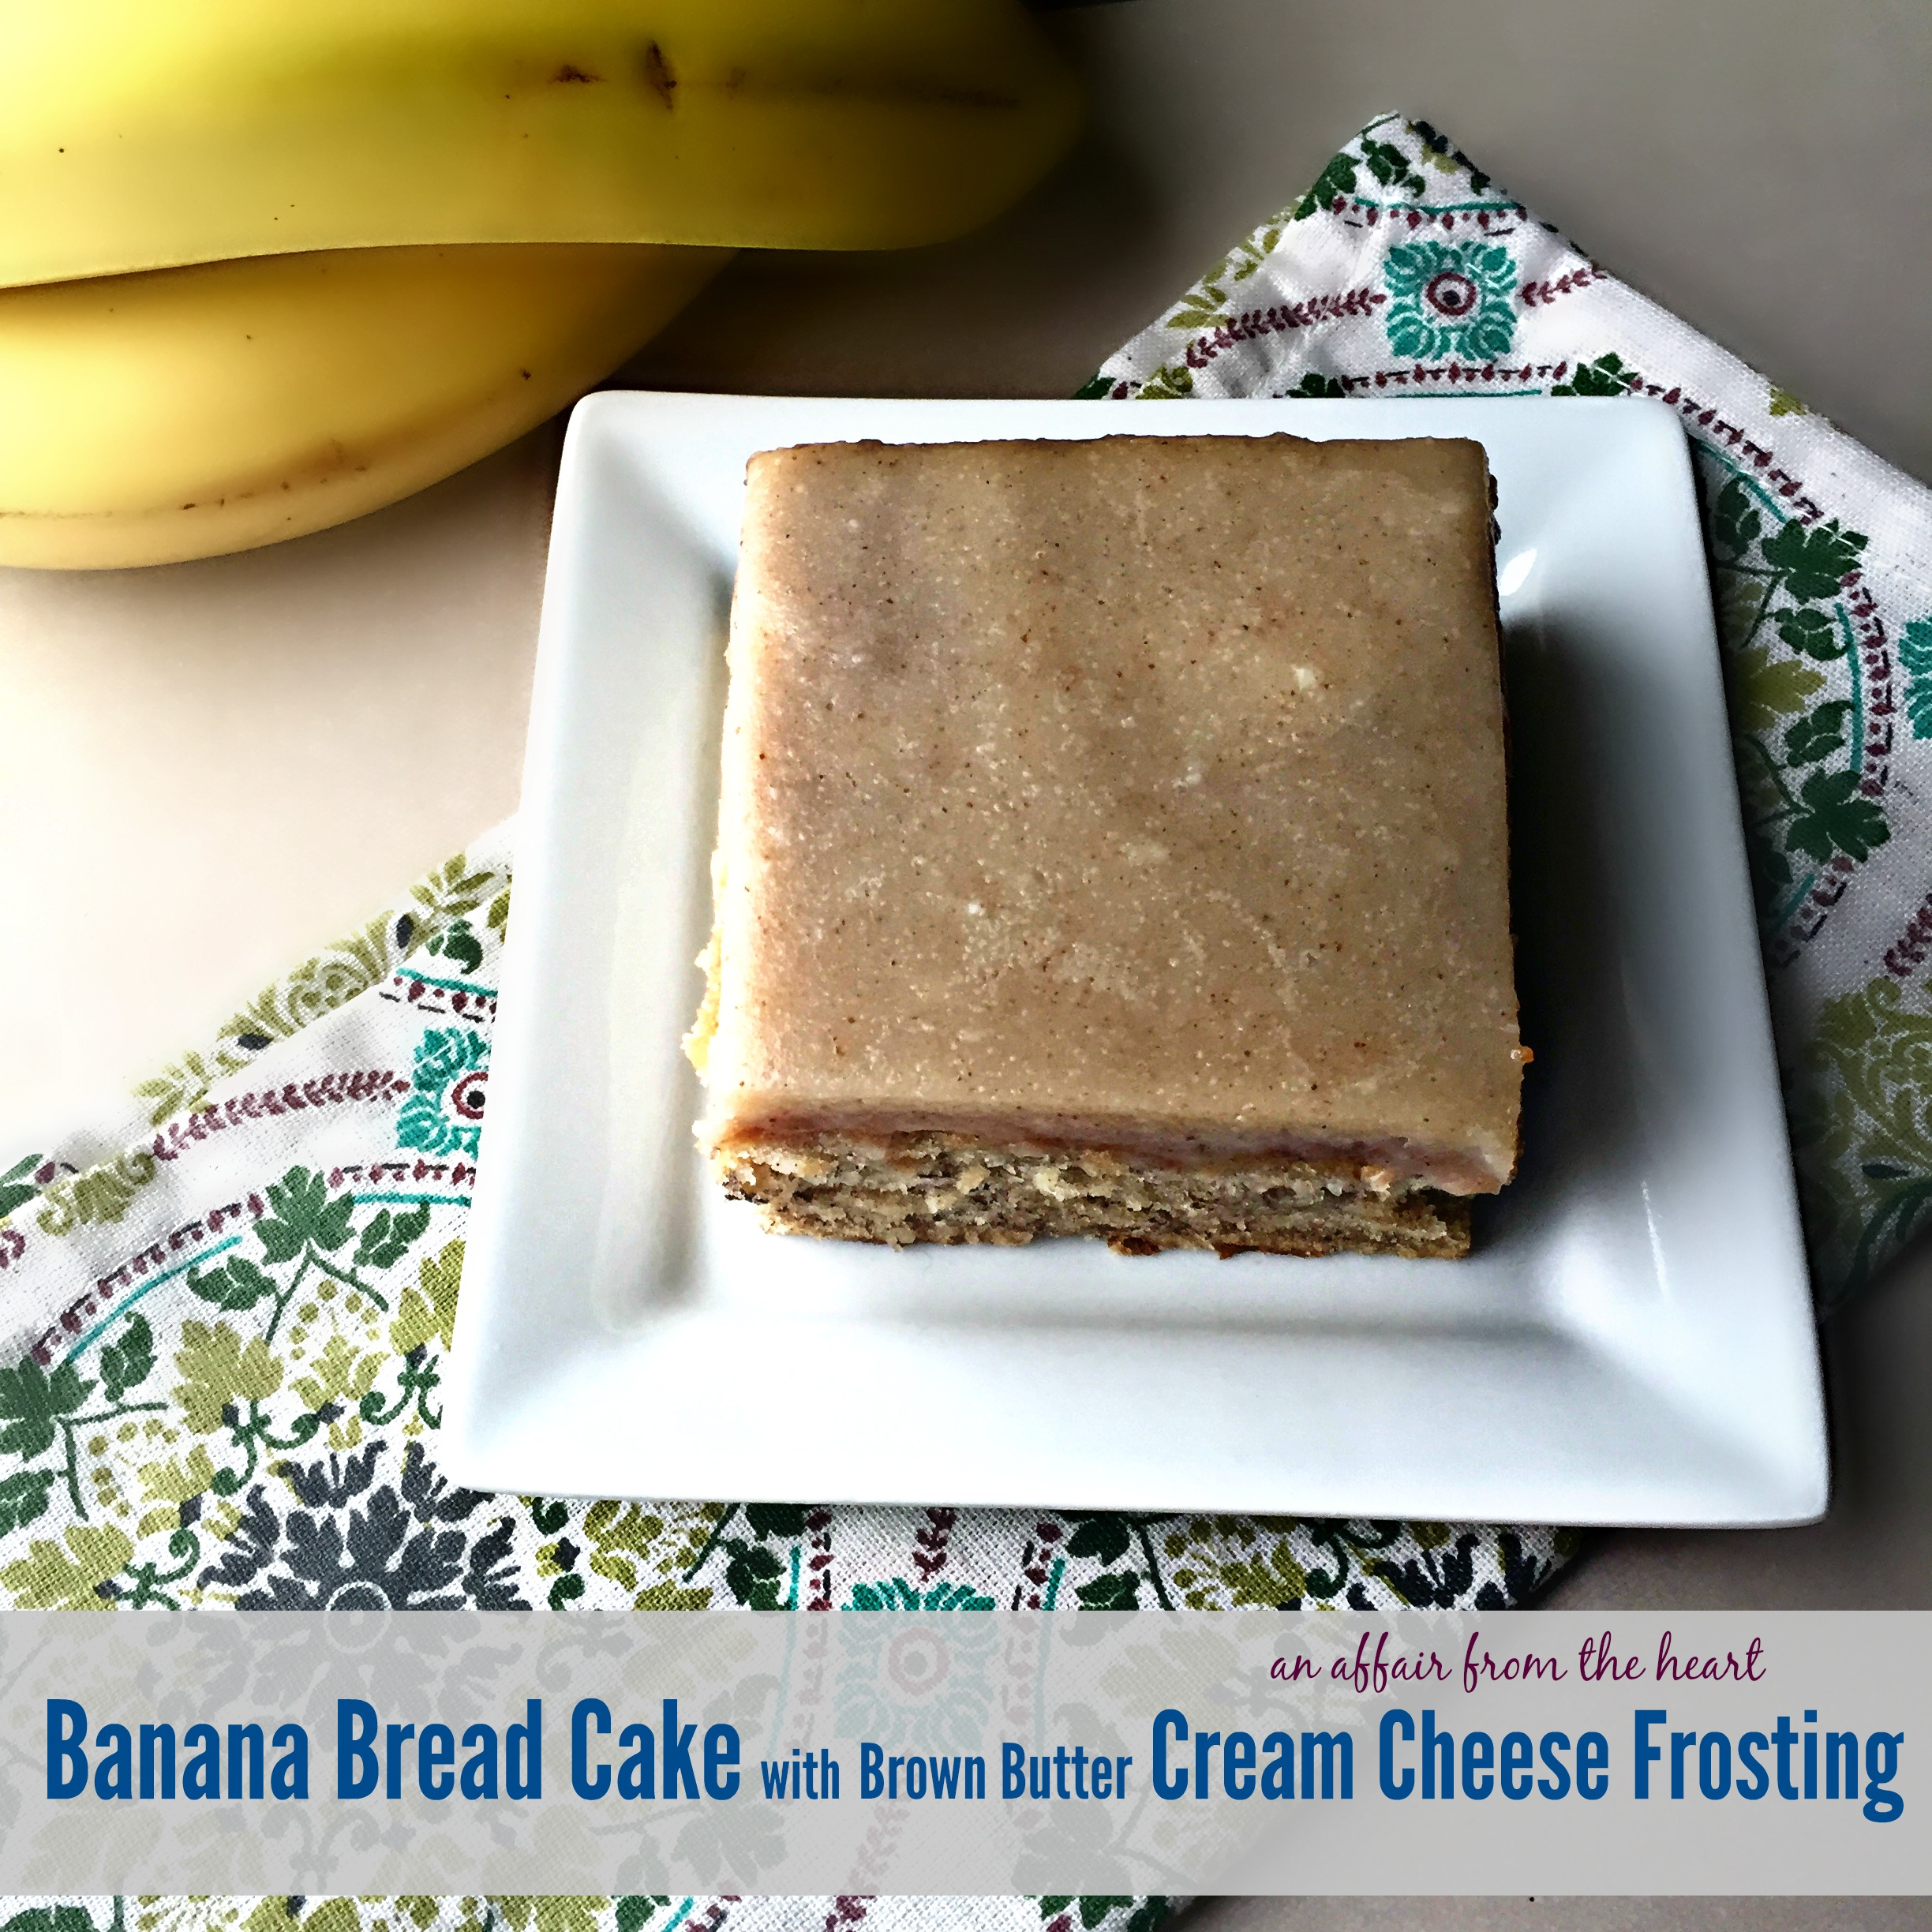 Banana Bread Cake with Brown Butter Cream Cheese Frosting